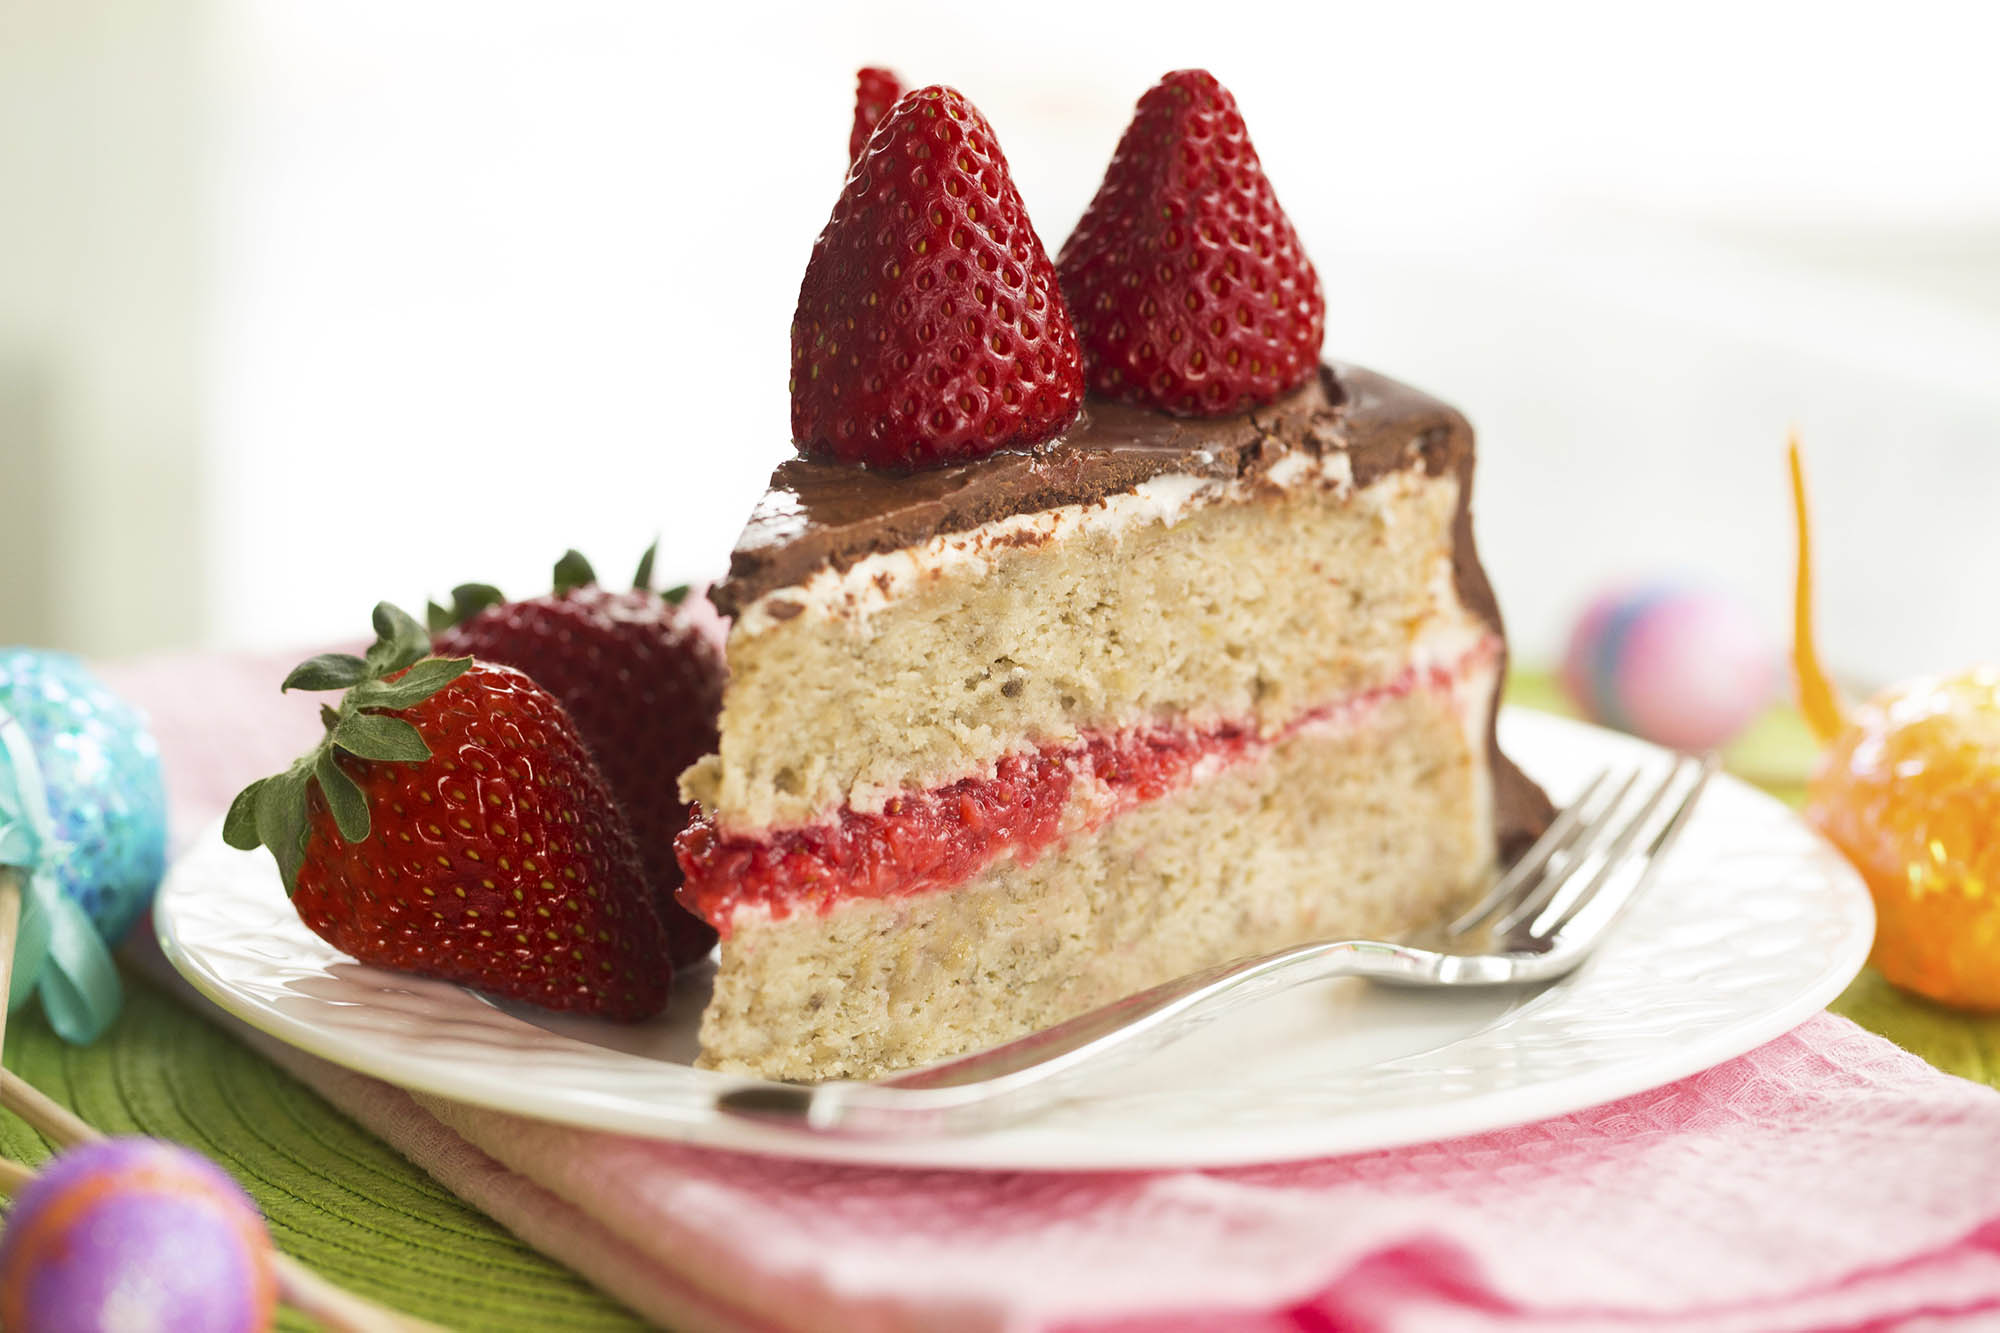 Chocolate Covered Banana Cake With Strawberries And Cream Cheese Frosting